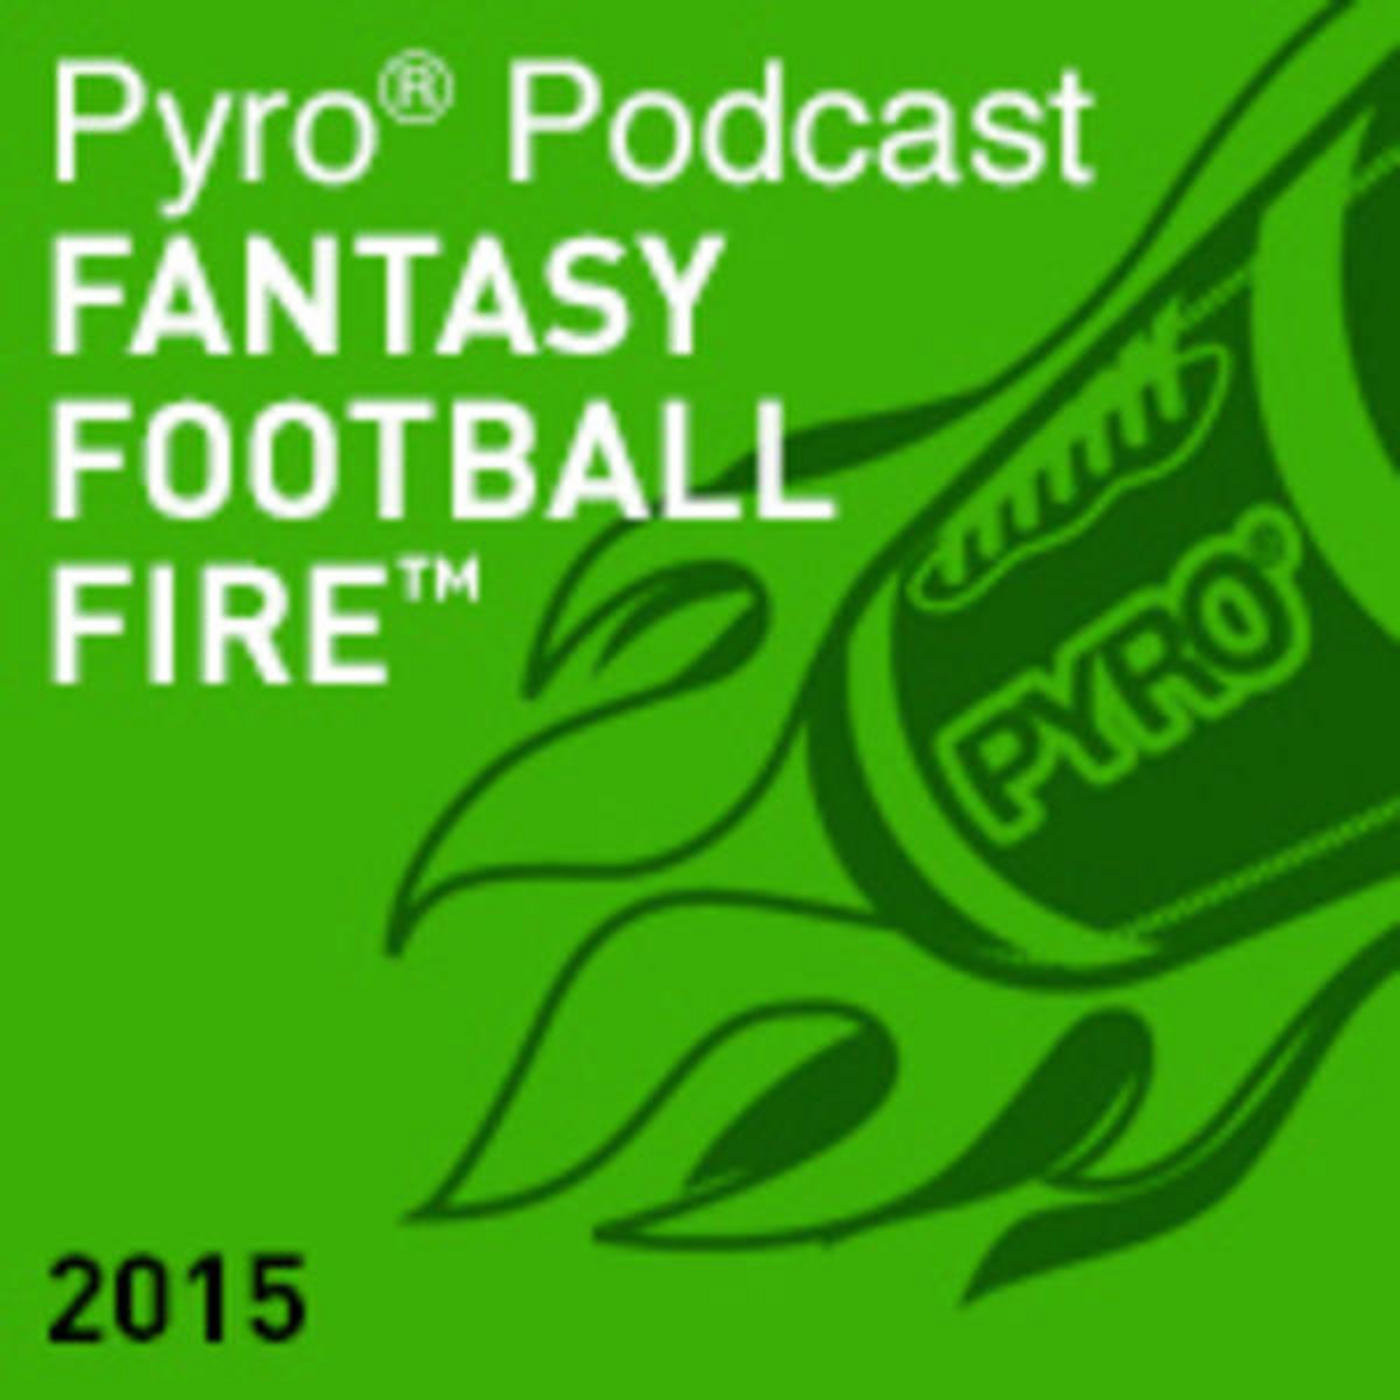 2016 Fantasy Football Podcast - Pyro Podcast Light Episode 28 - Fantasy Football Talk w/ PyromaniacMo and Christopher...